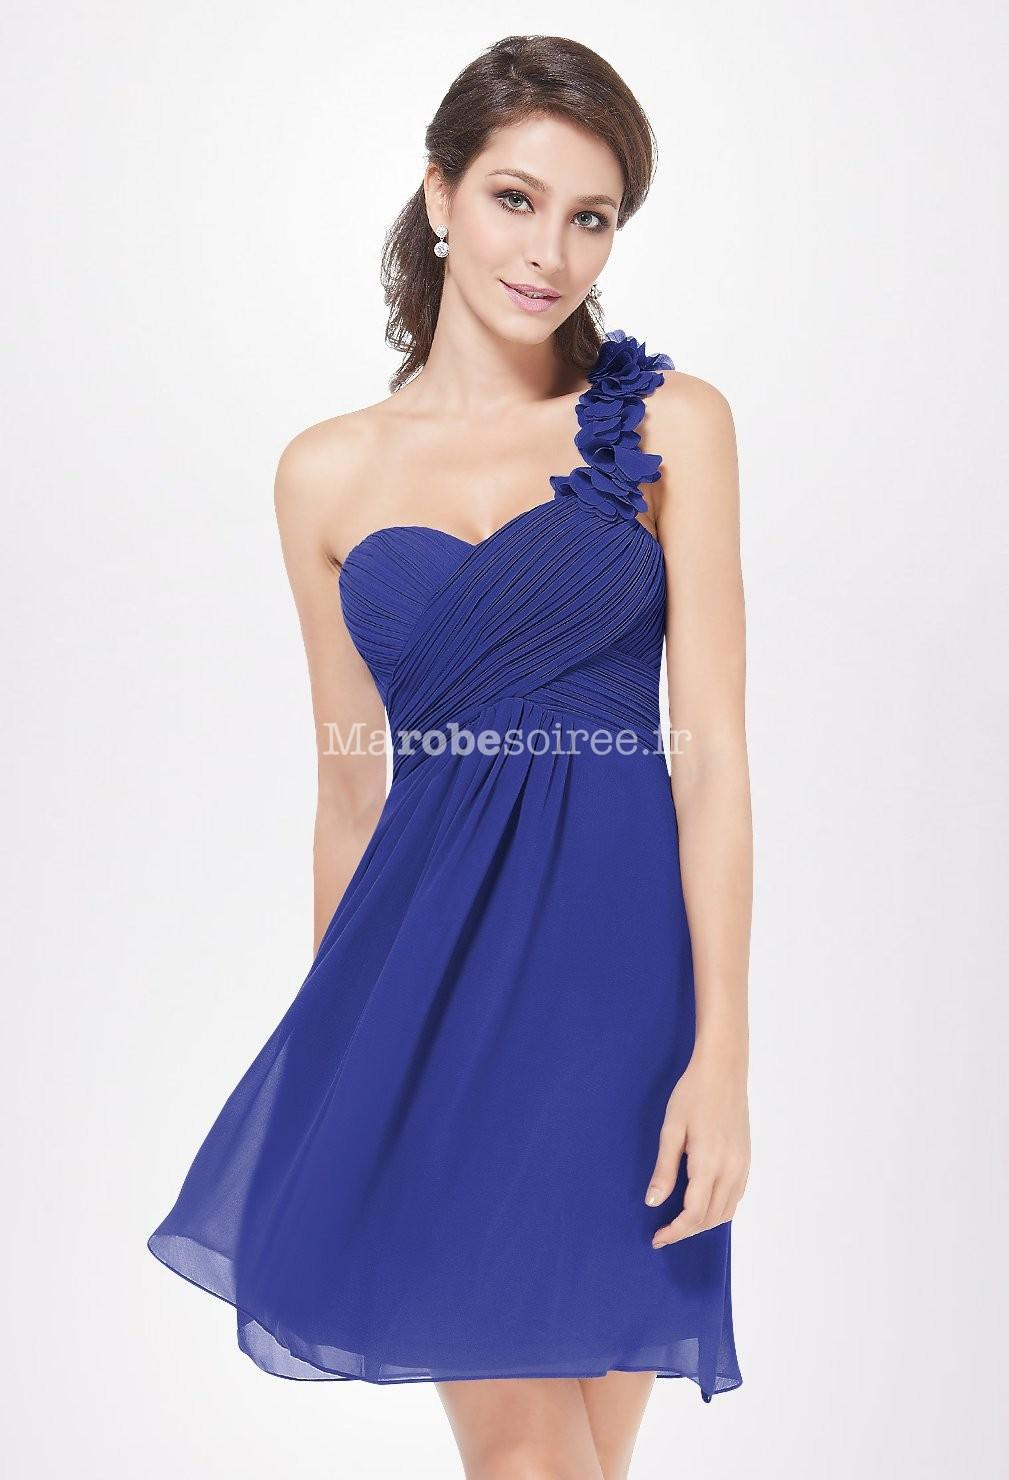 Robe cocktail courte bleu